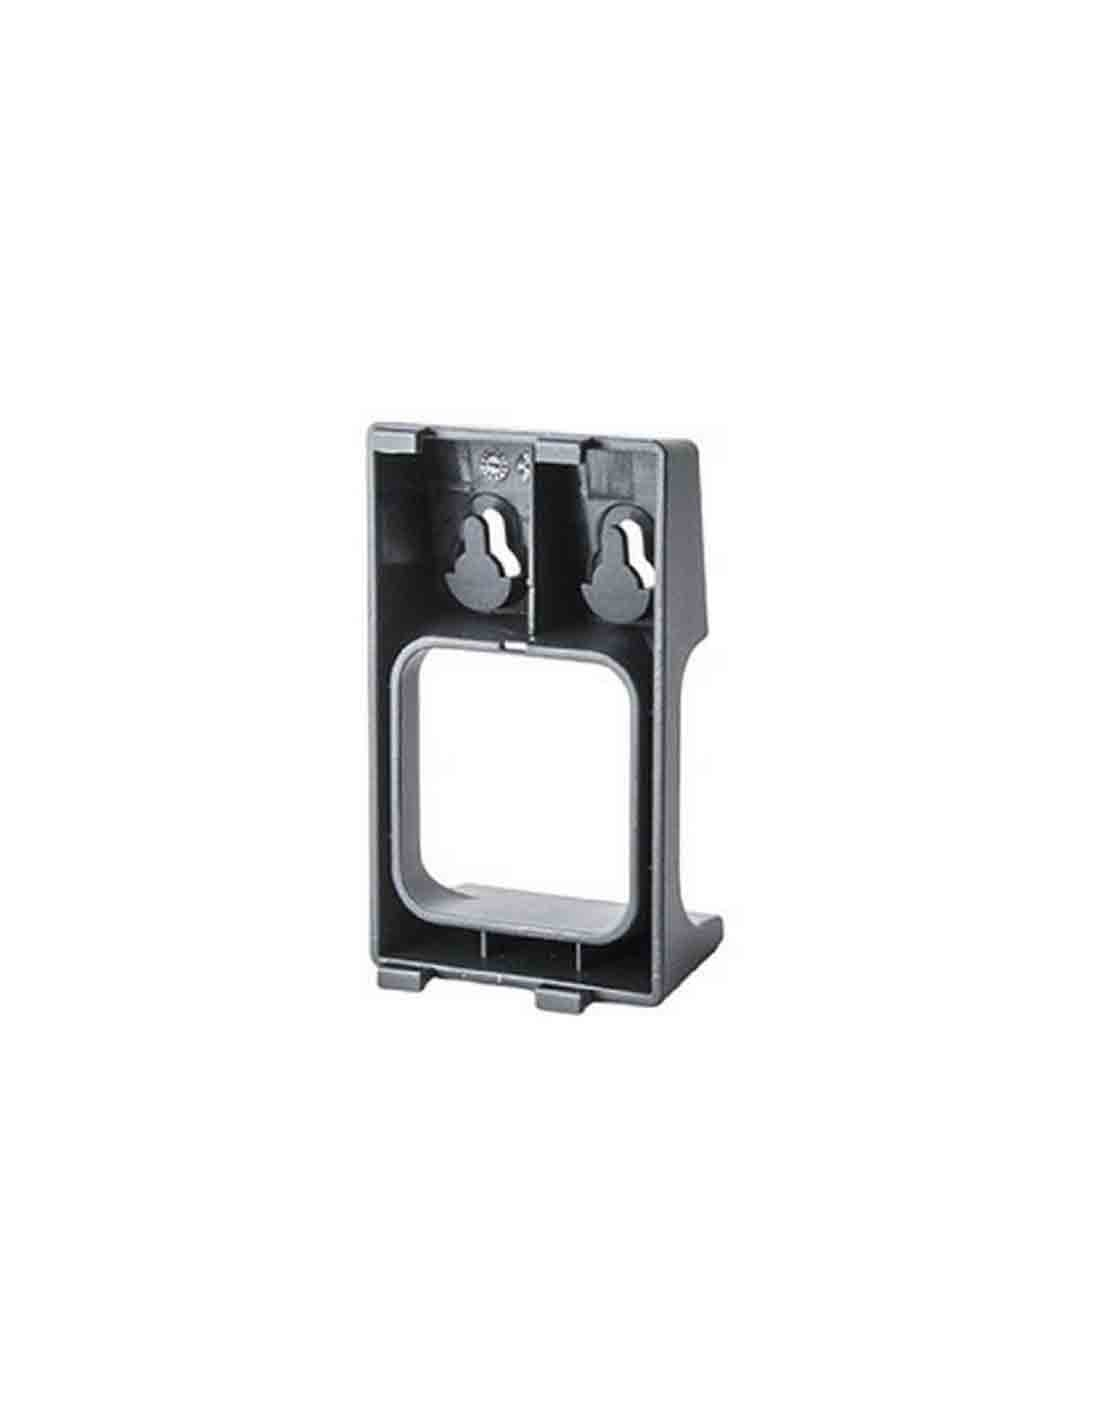 Yealink Wall Mount Bracket for EXP40 images